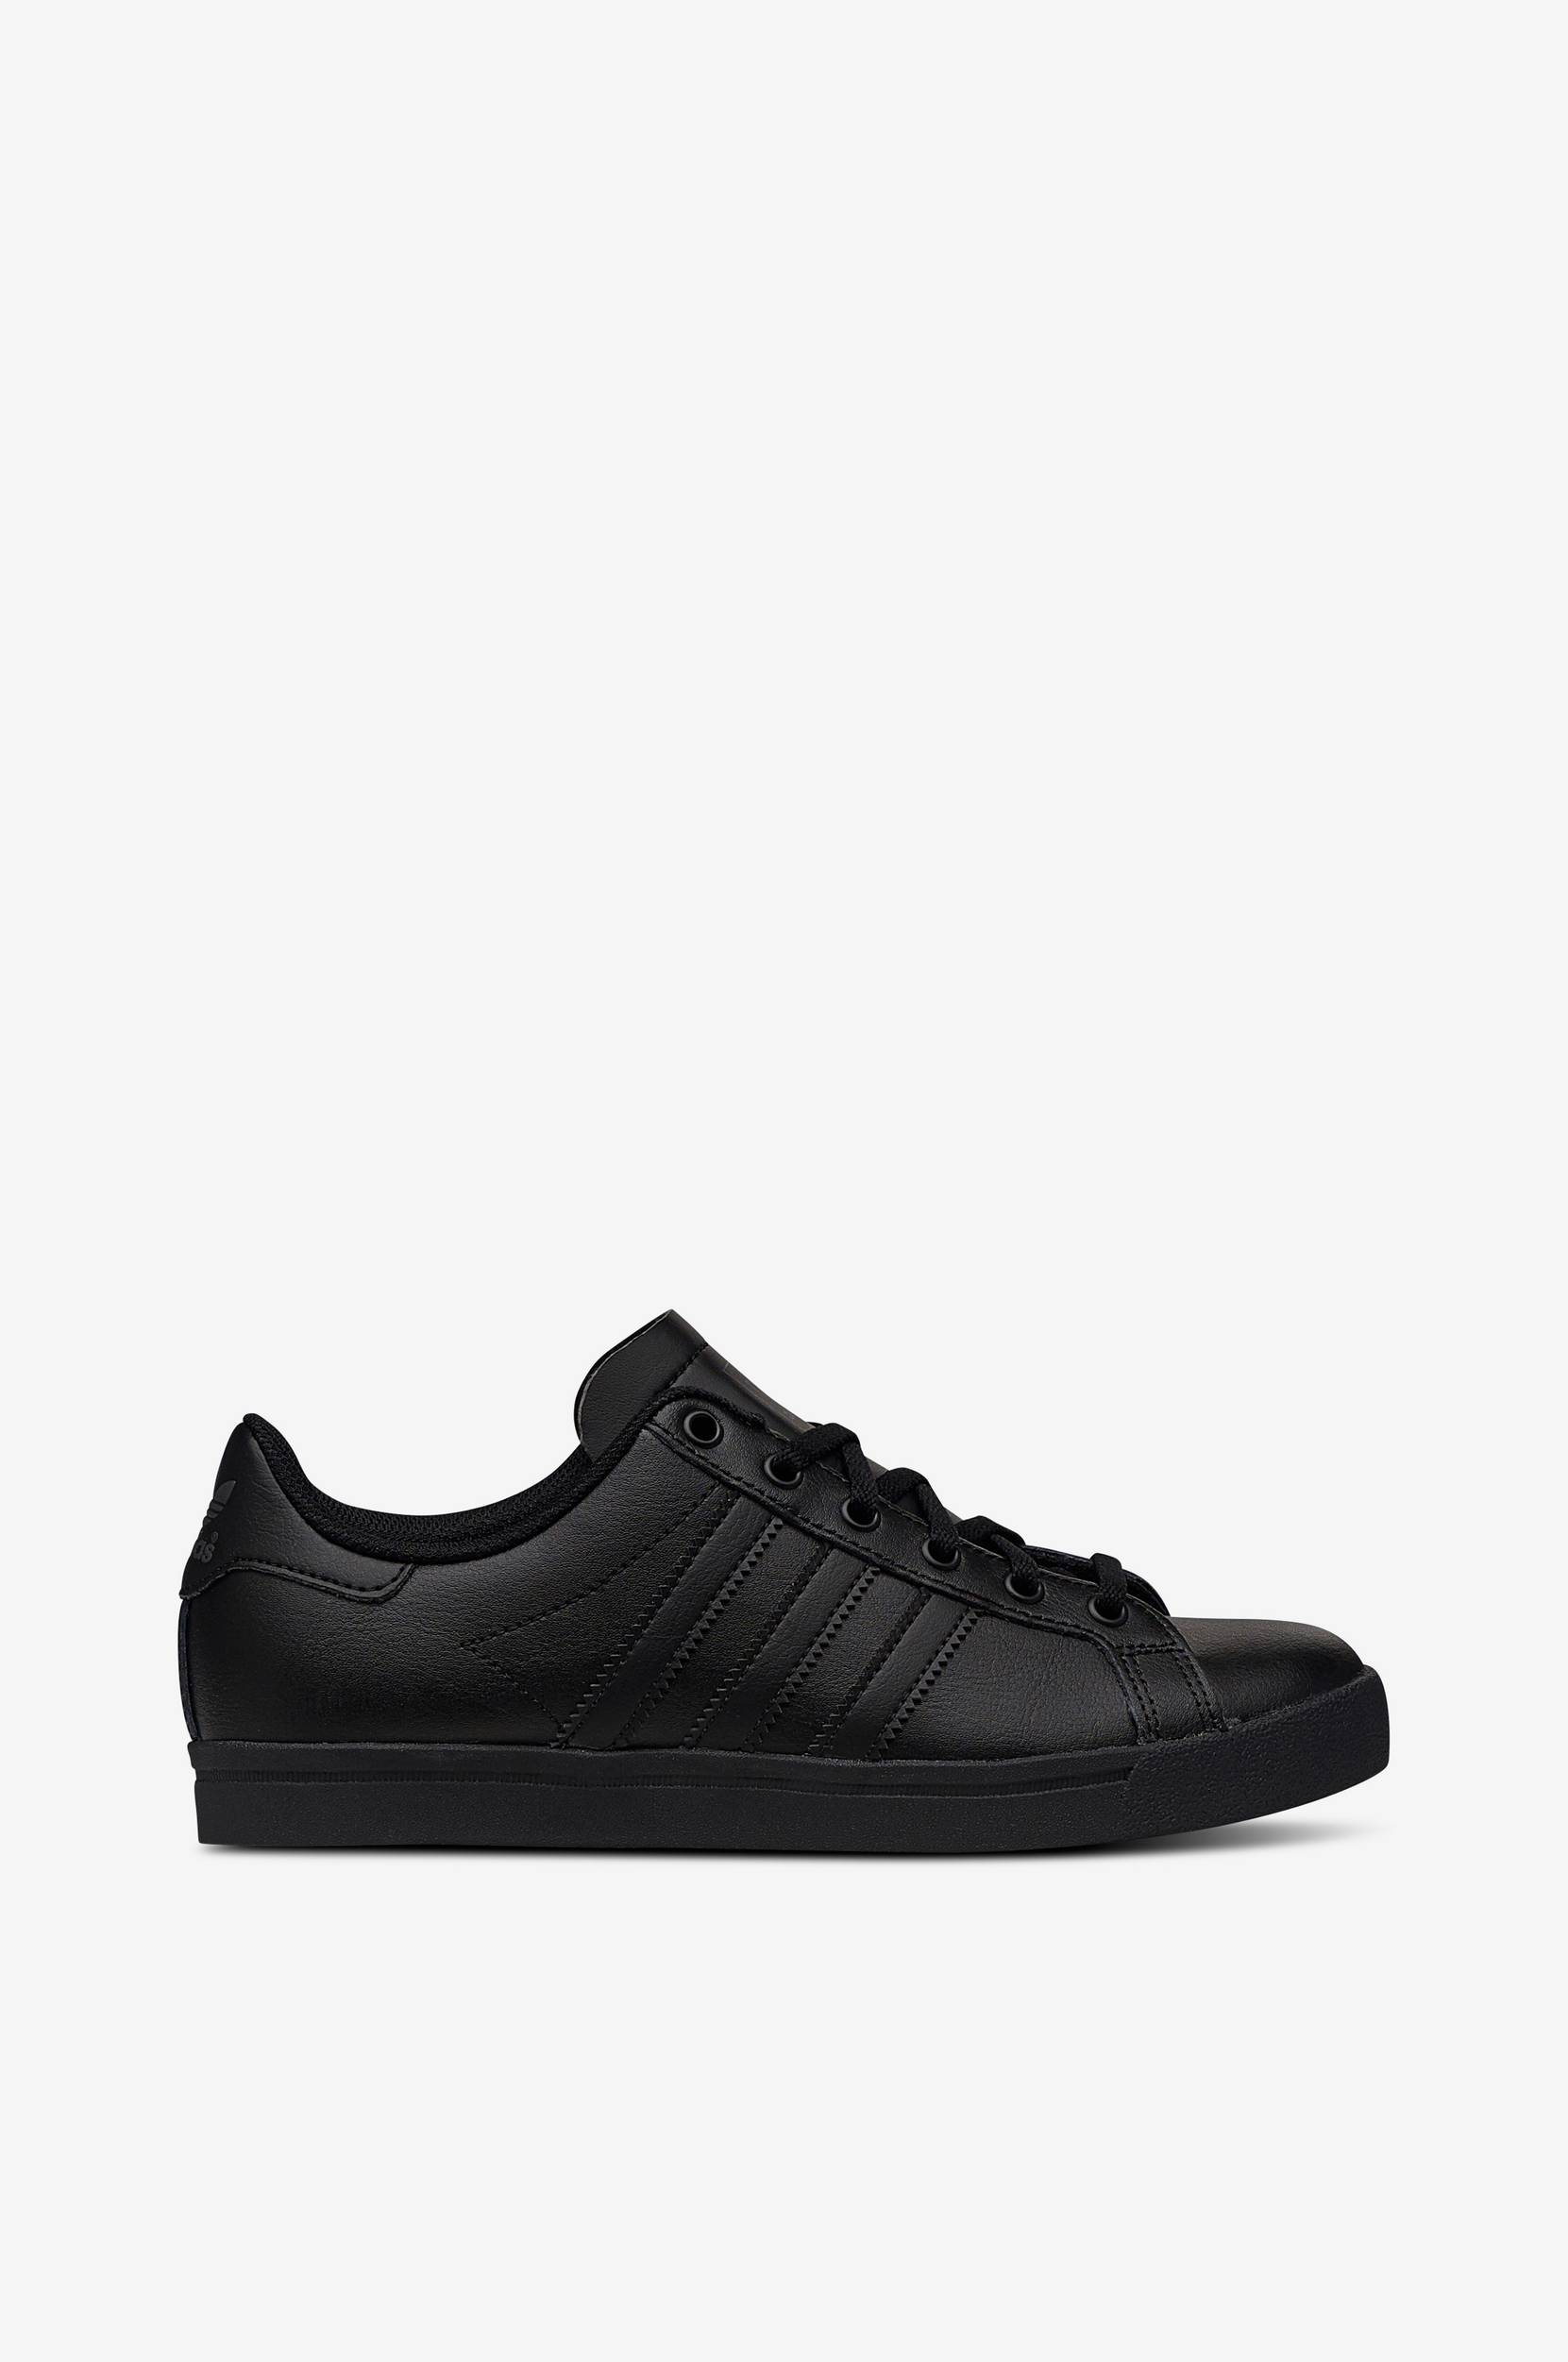 adidas Originals Coast Star J Coreblackcoreblackgreysix